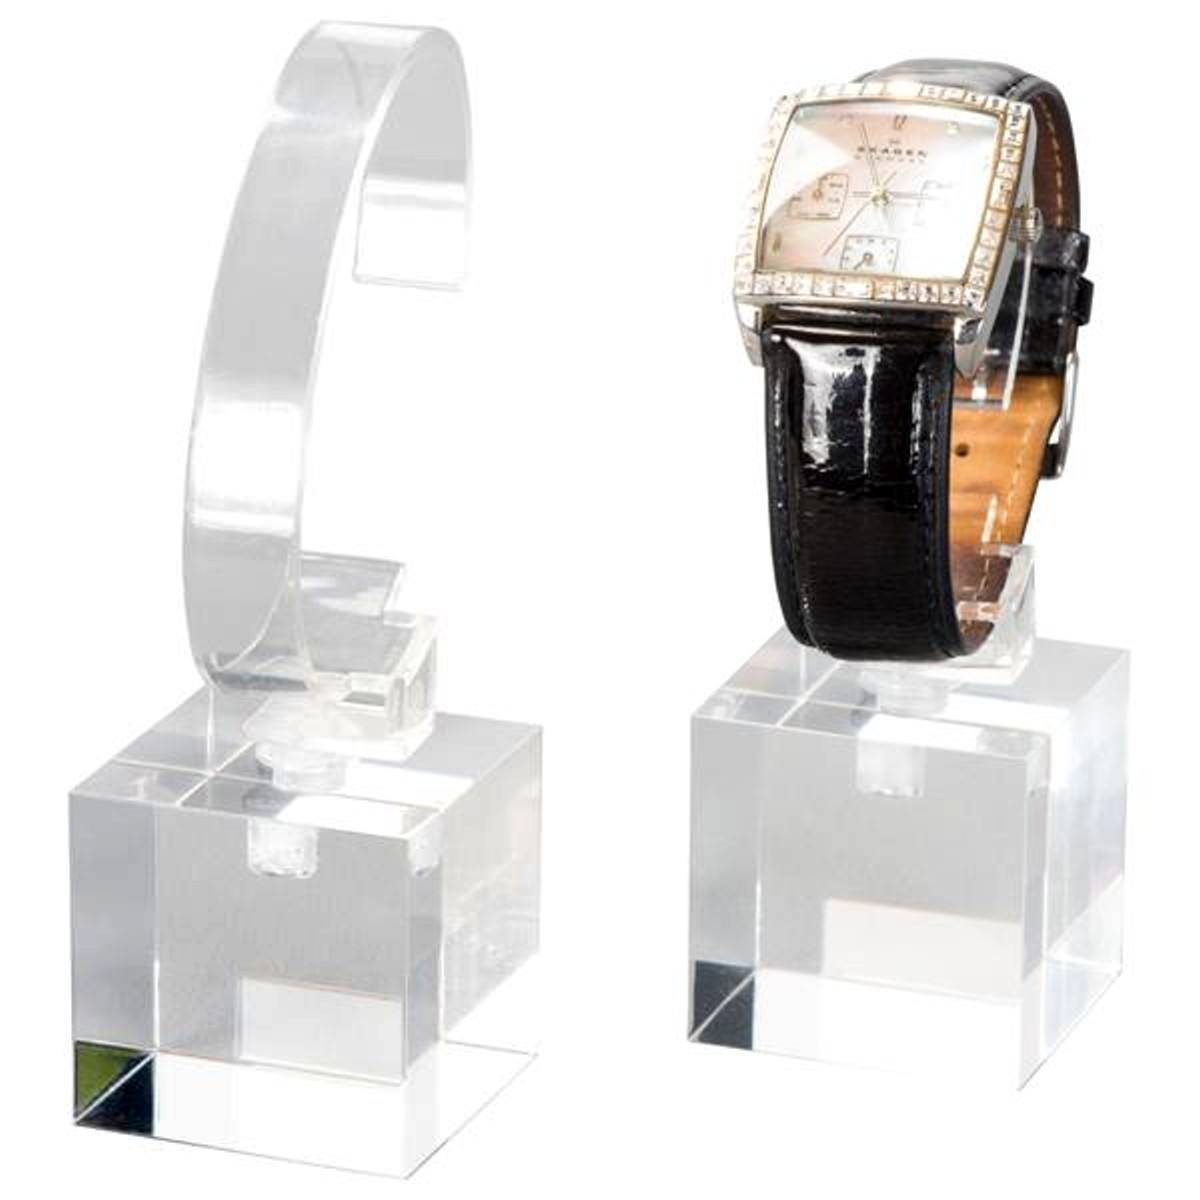 New Design Elegant Acrylic Watch Shop Display Furniture Smart Wrist Watch Display Stand Holder Tray Rack für Displaying Watch